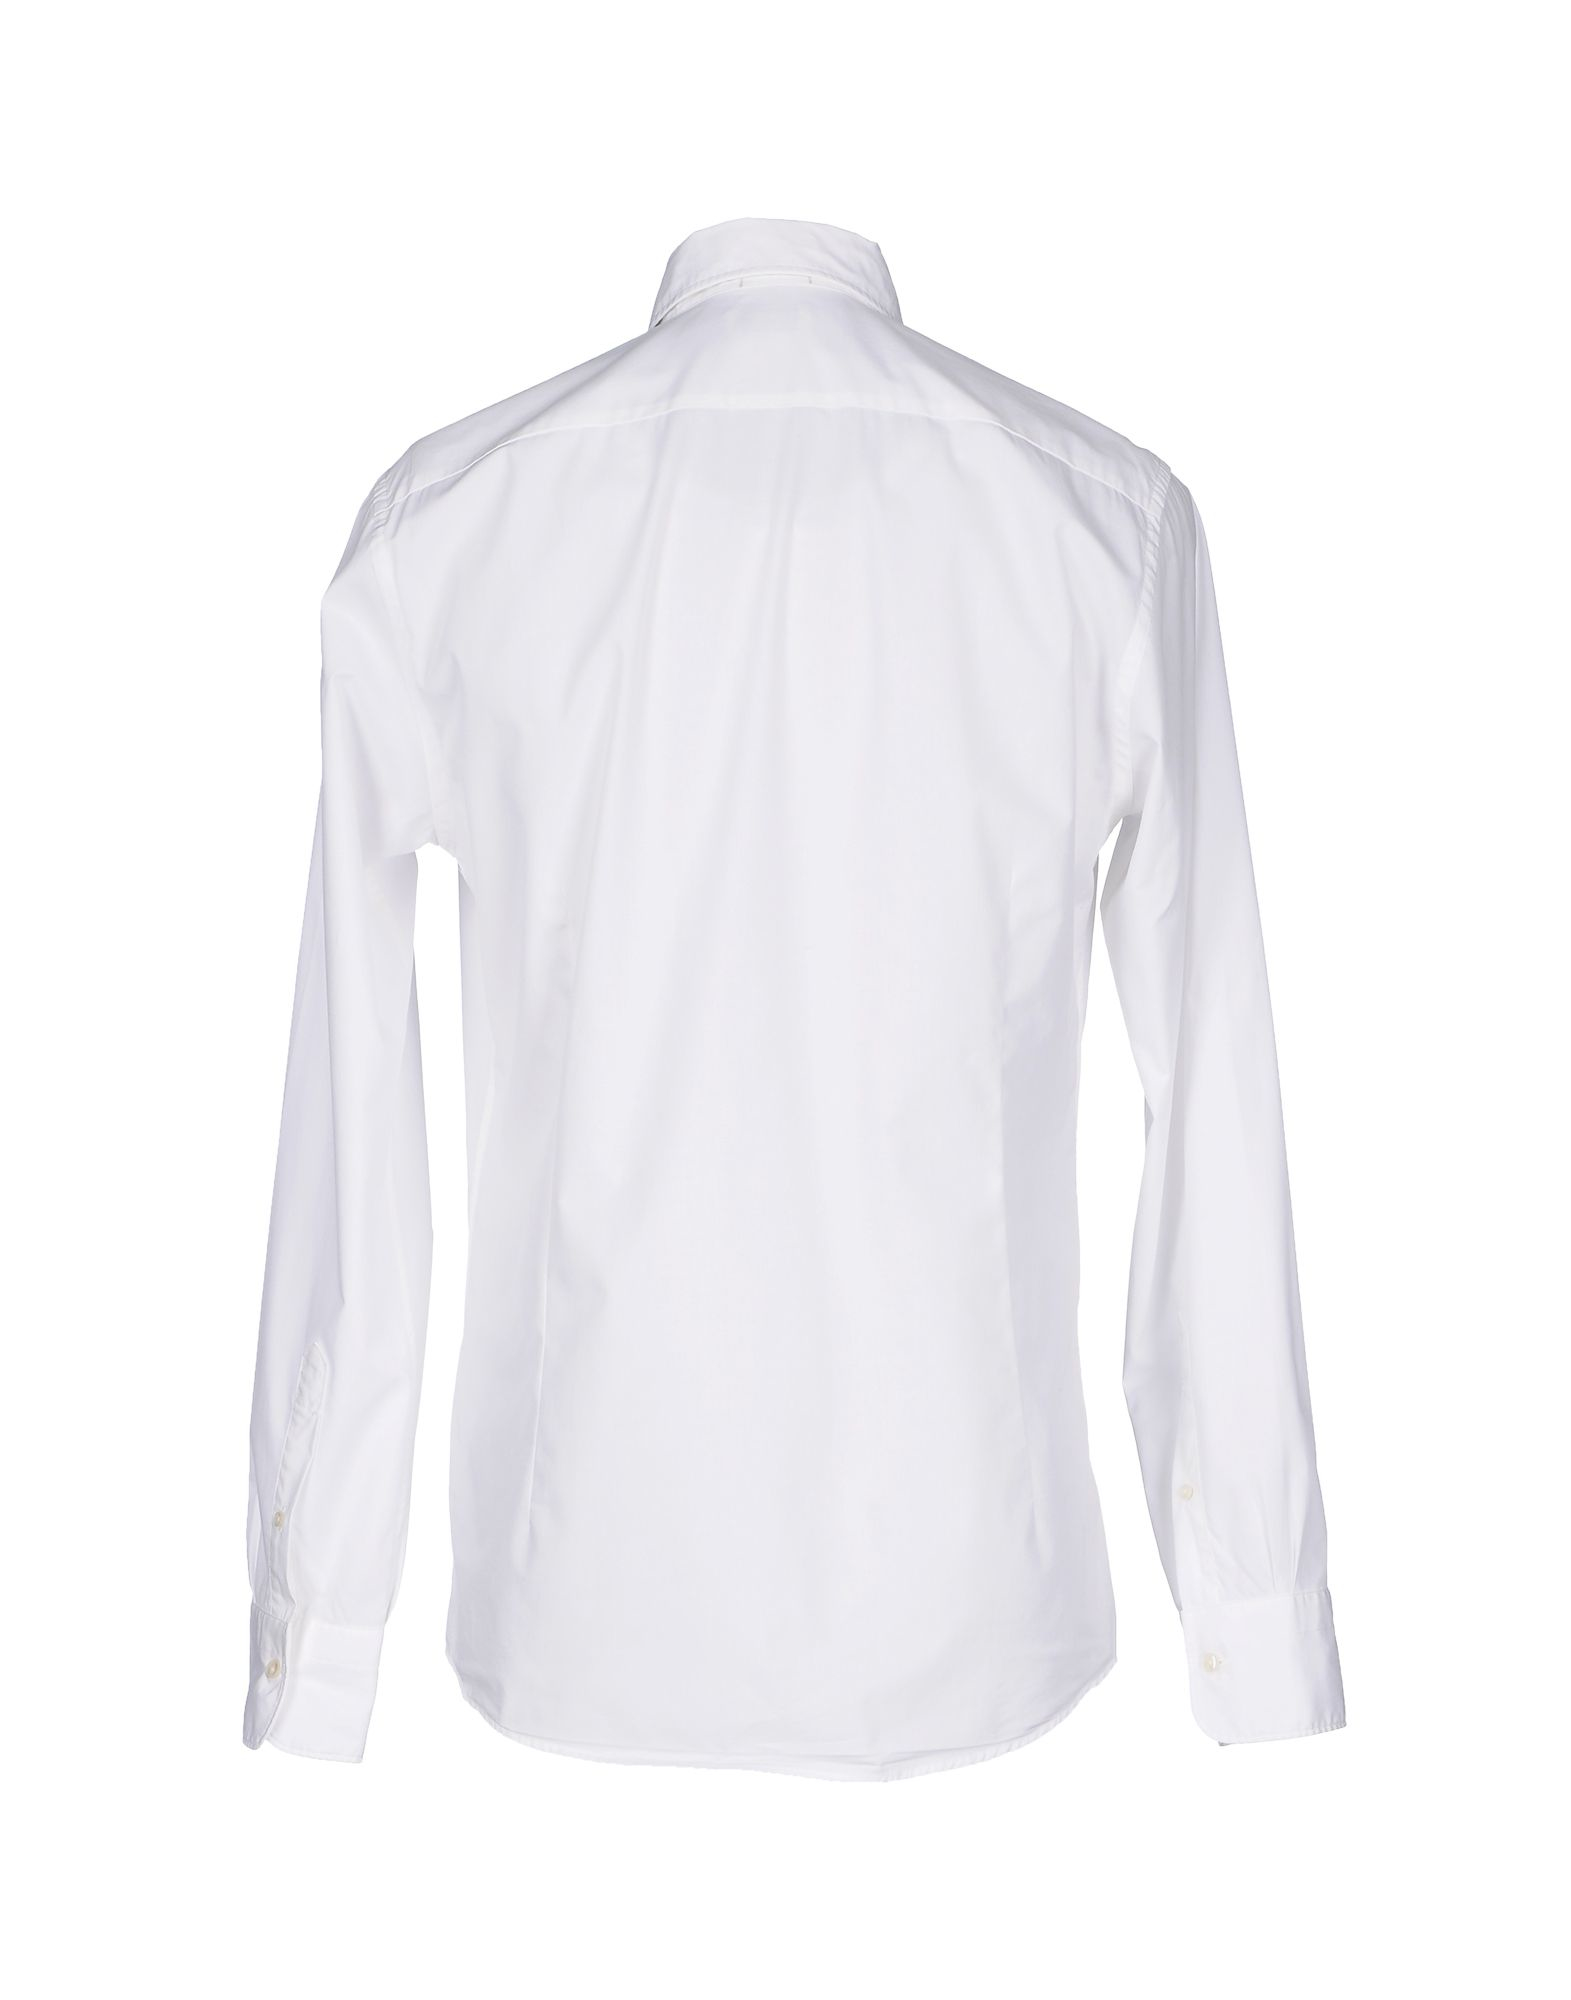 Atelier scotch shirt in white for men lyst for Atelier maison scotch